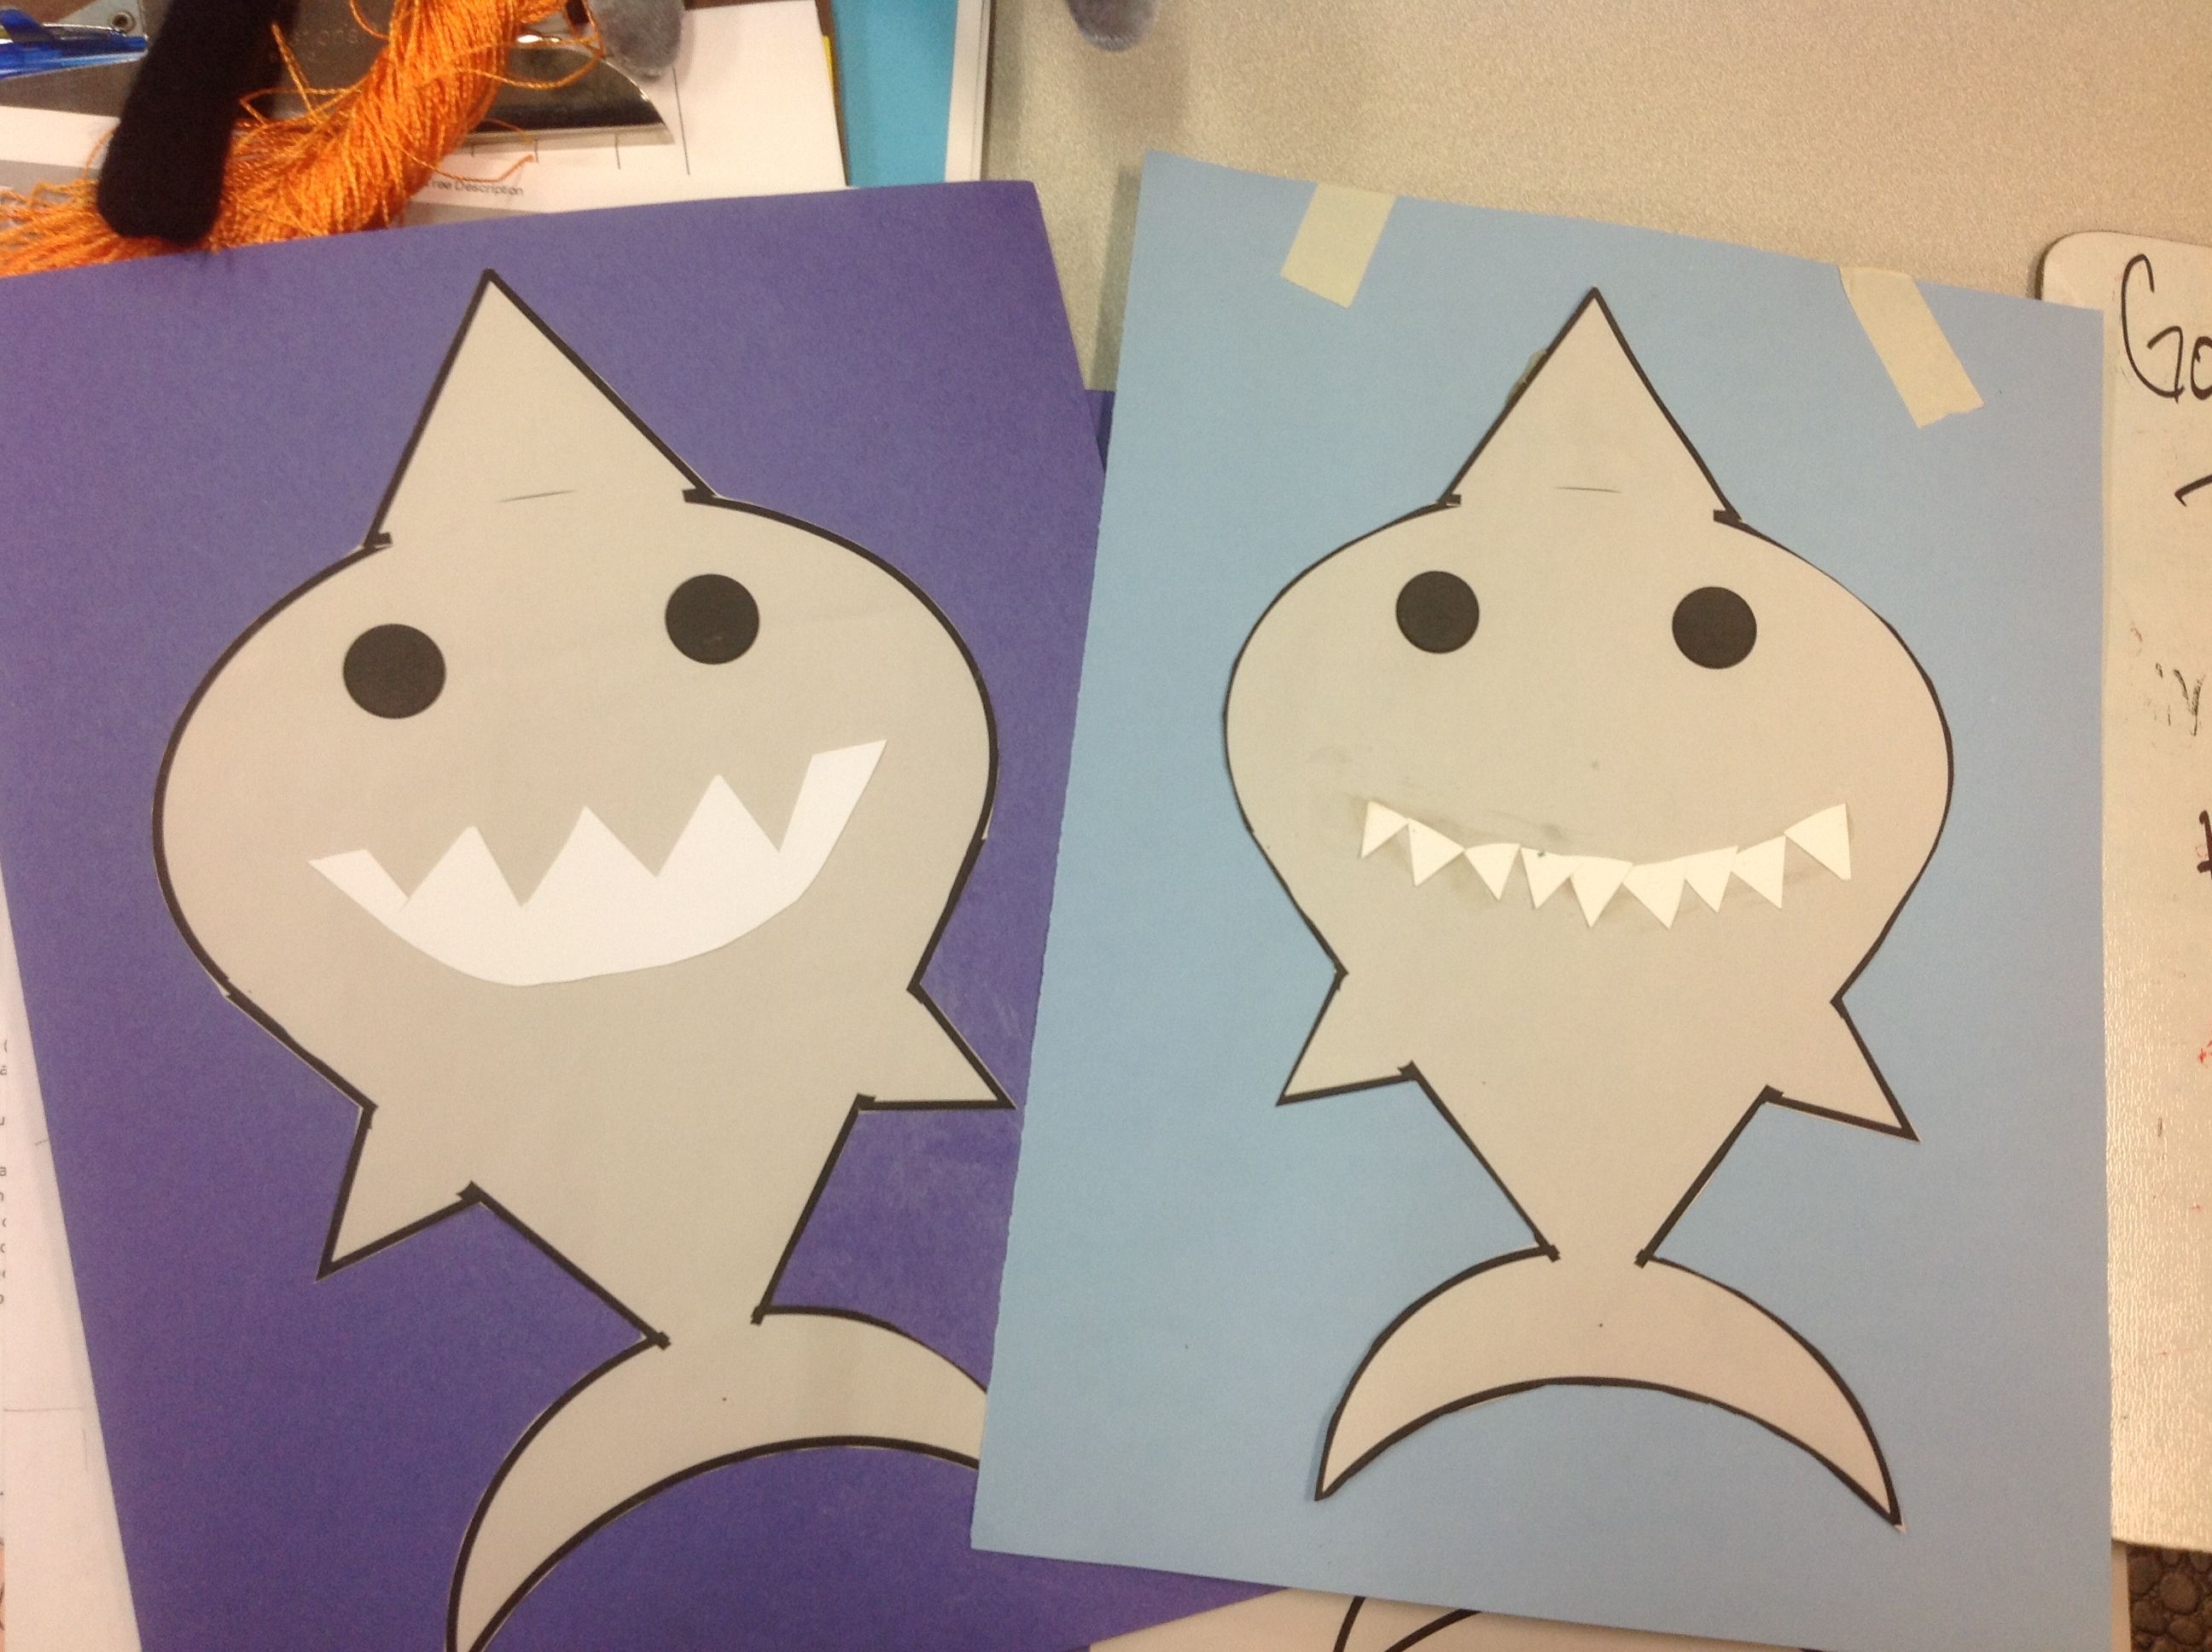 Shark craft for toddlers and preschoolers Template:http